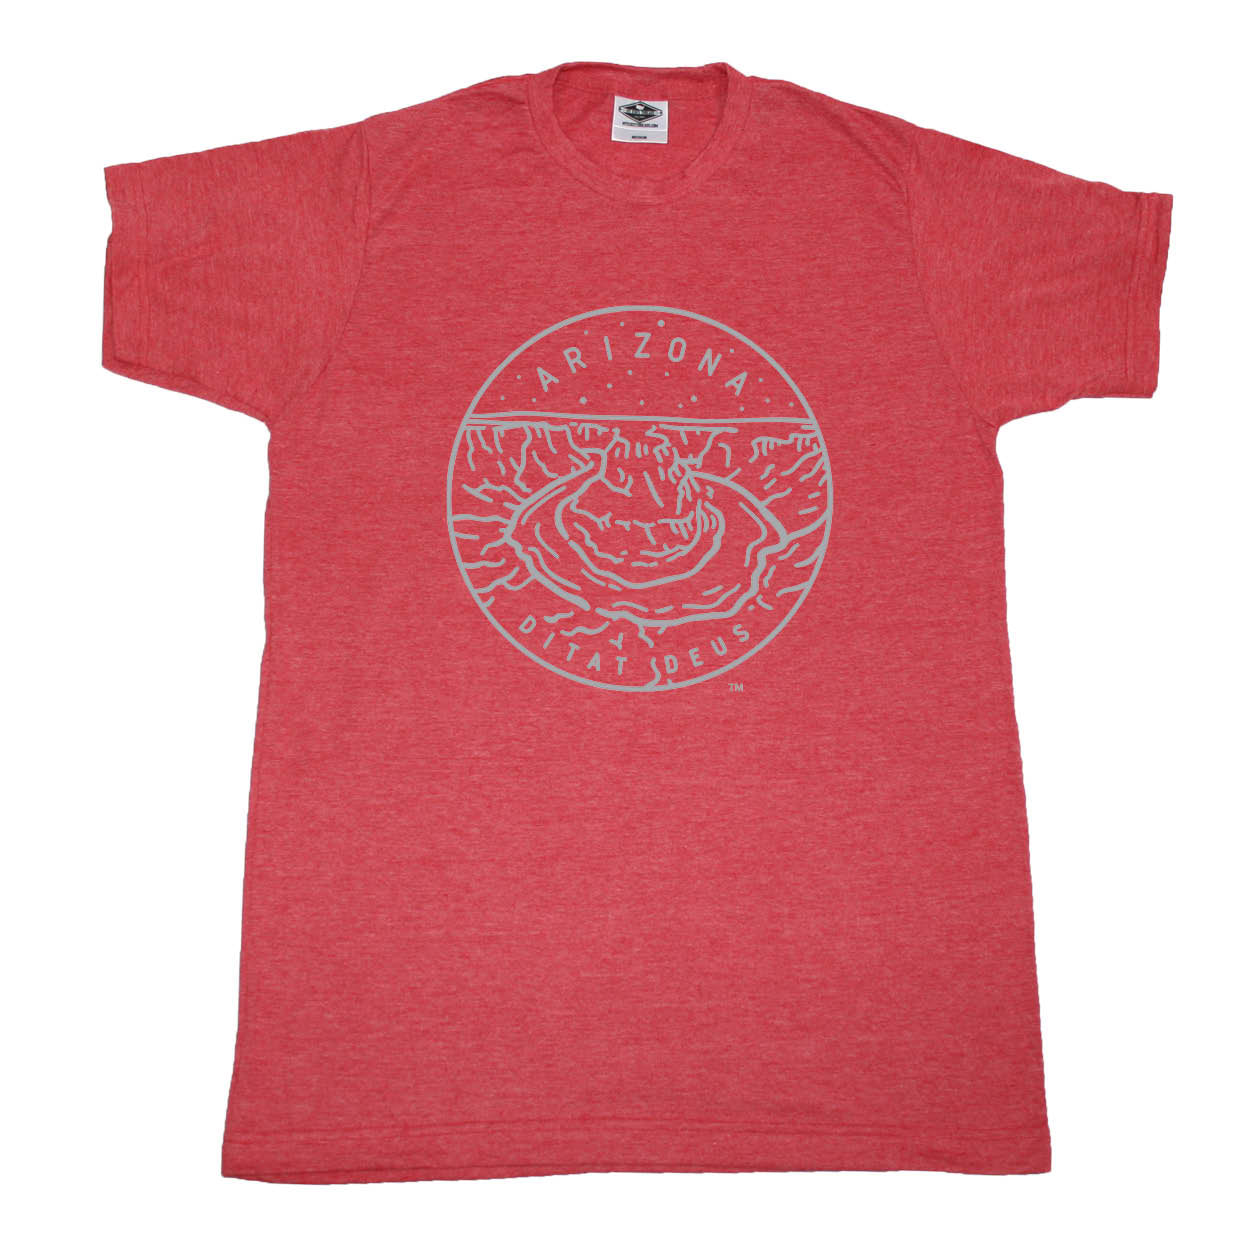 ARIZONA RED TEE | STATE SEAL | DITAT DEUS